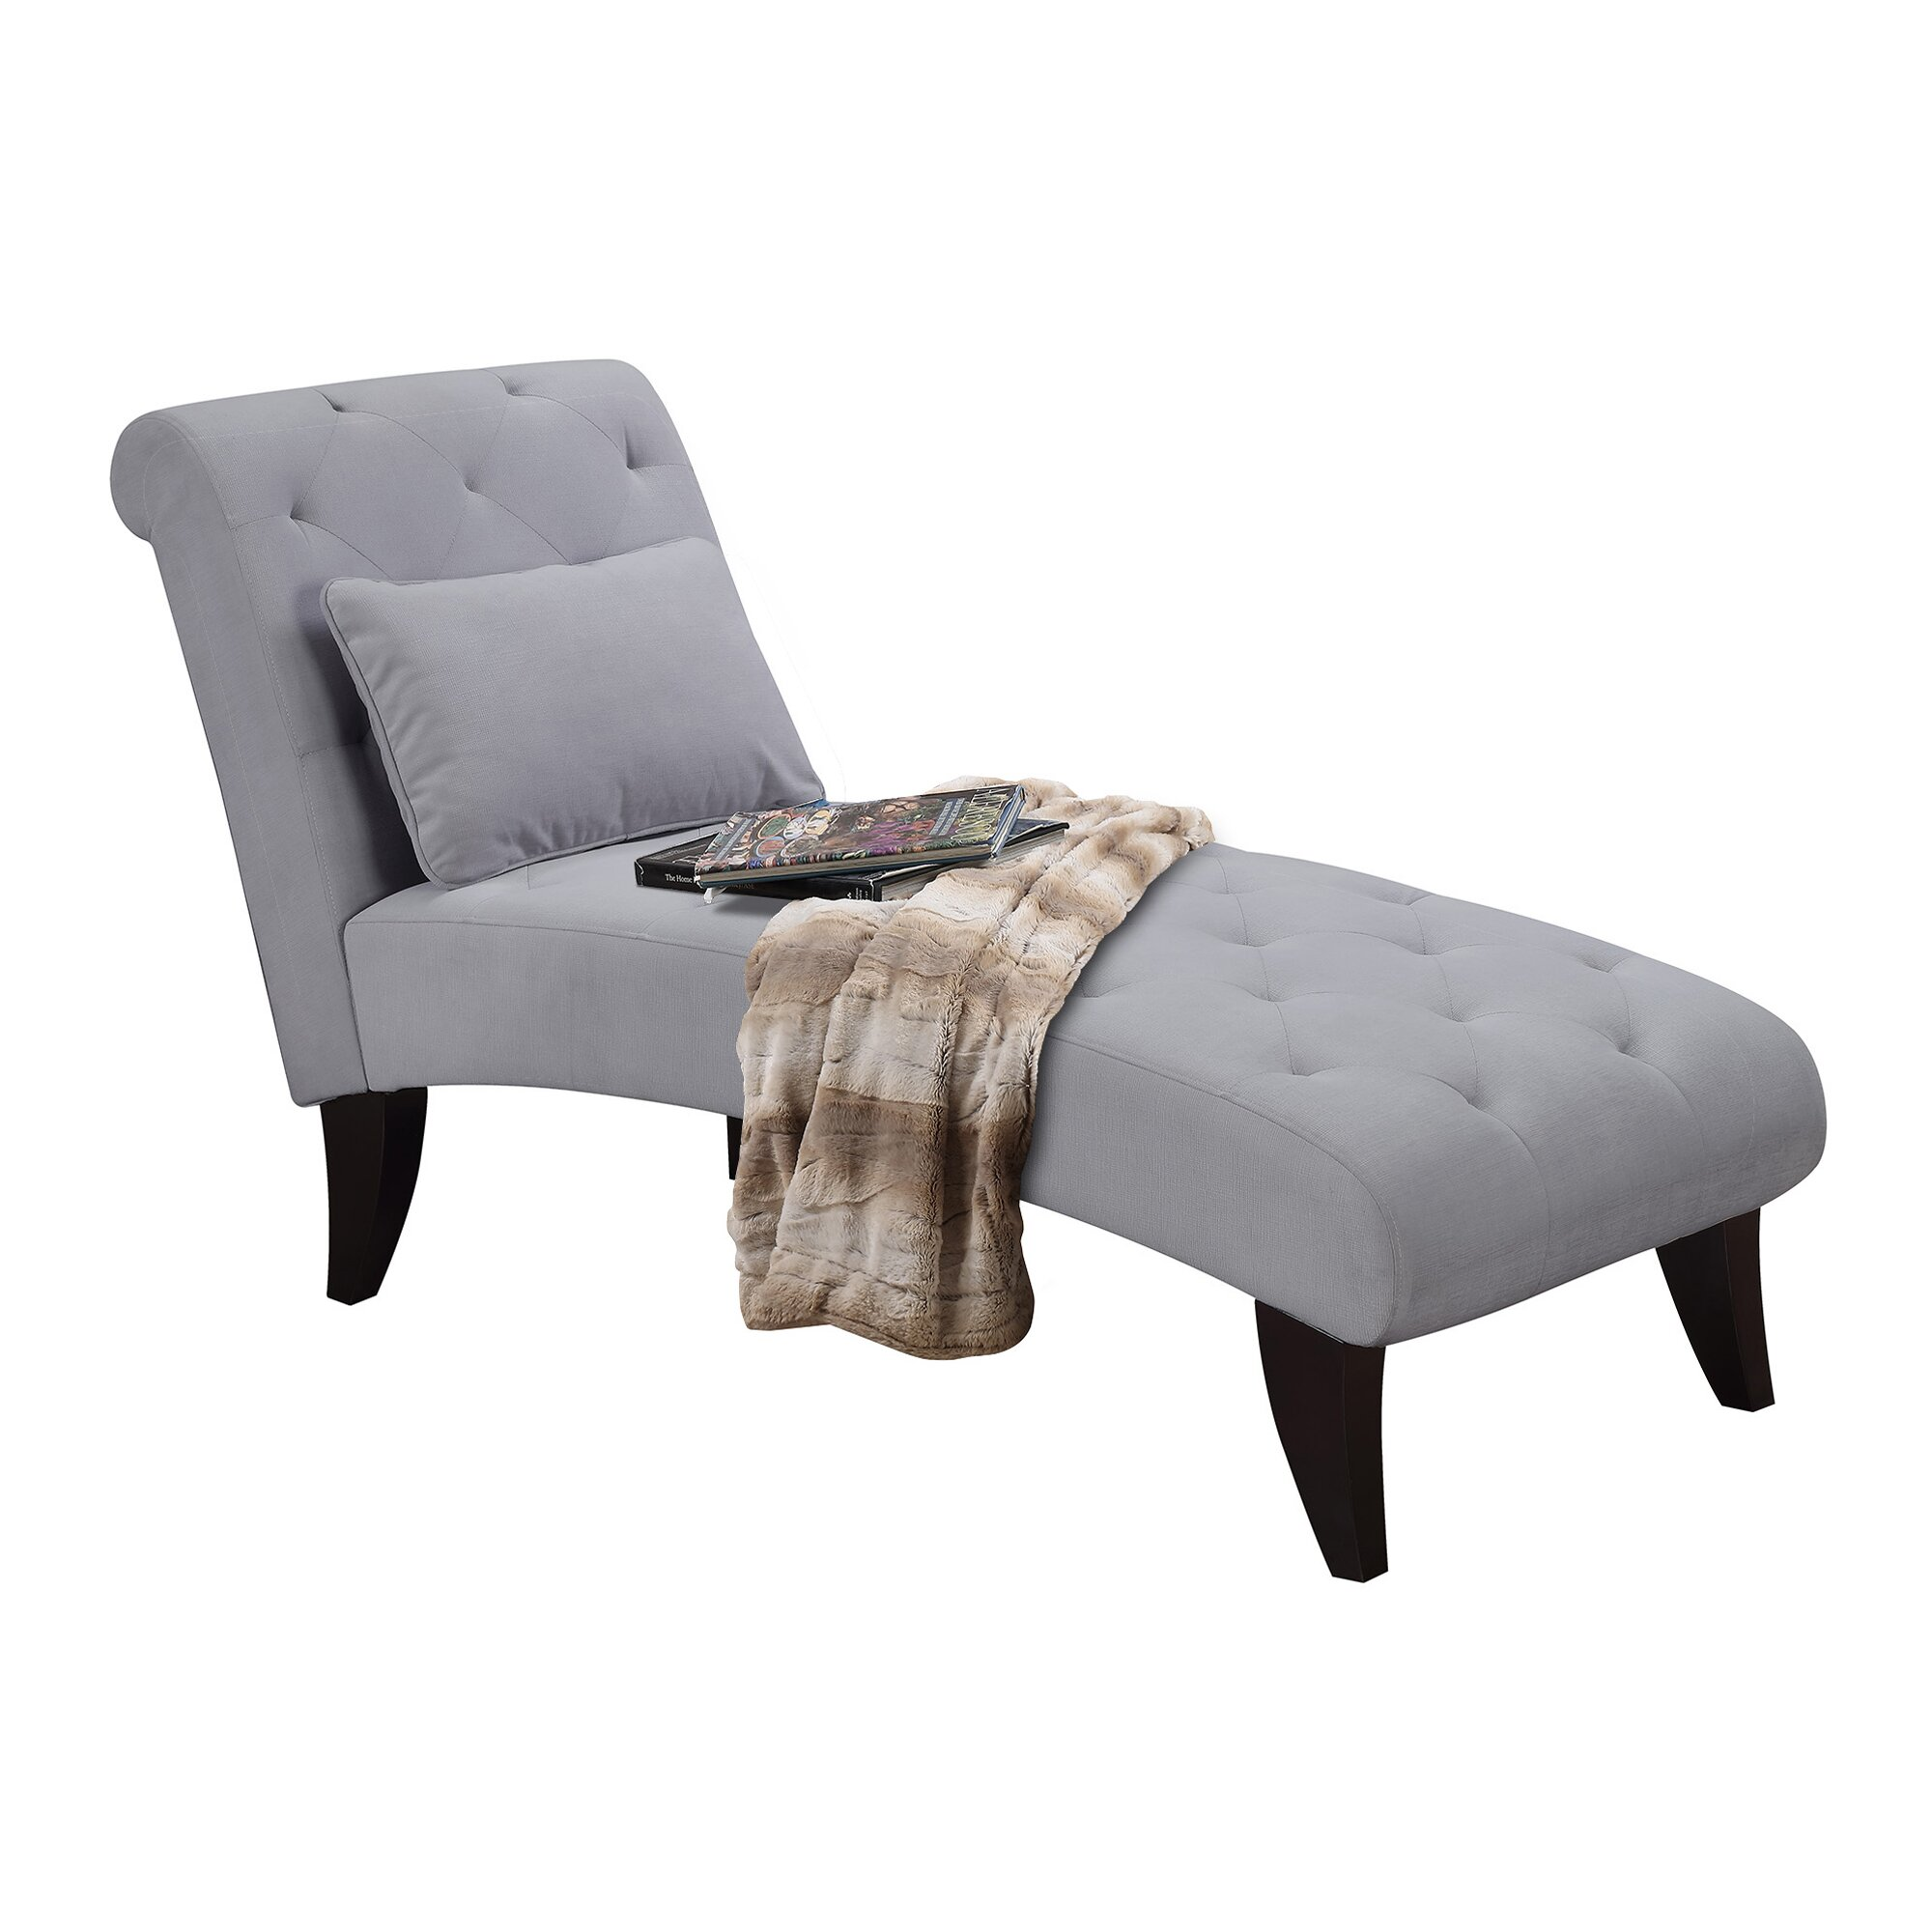 Gideon ashley chaise lounge reviews joss main for Chaise lounge ashley